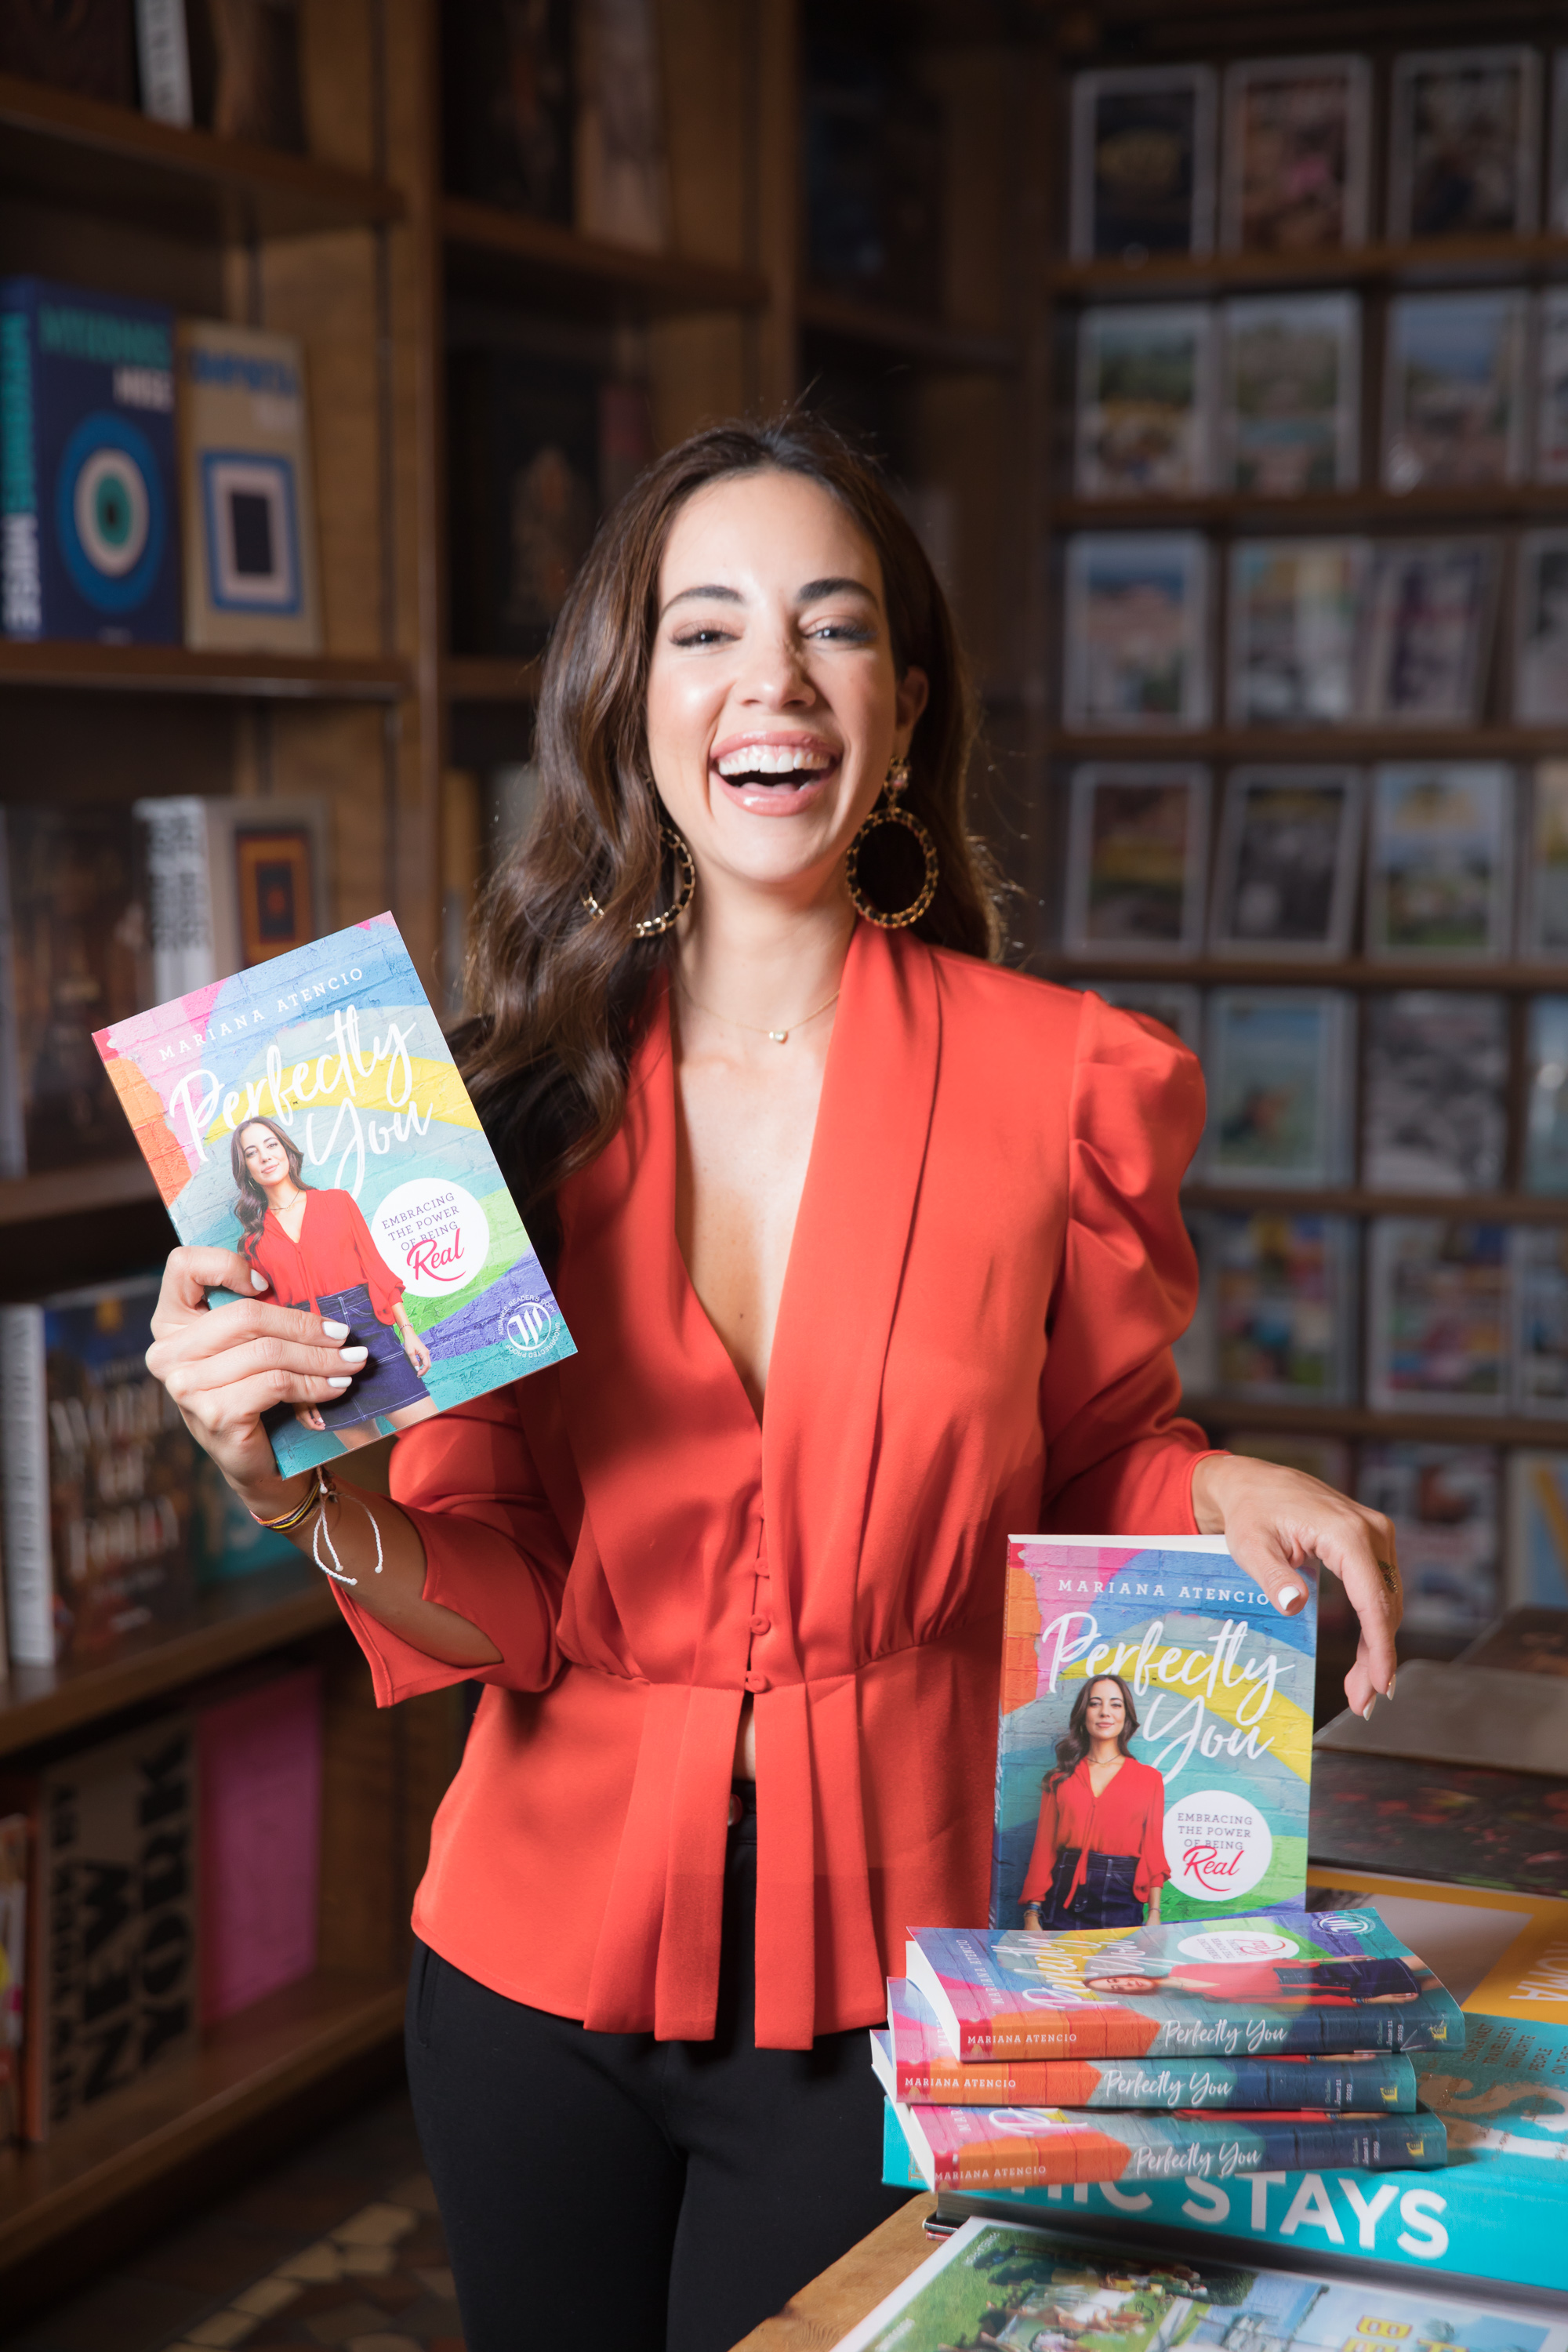 Latina MSNBC and NBC News correspondent, Peabody award winner, and now author, Mariana Atencio and her new book,  Perfectly You .